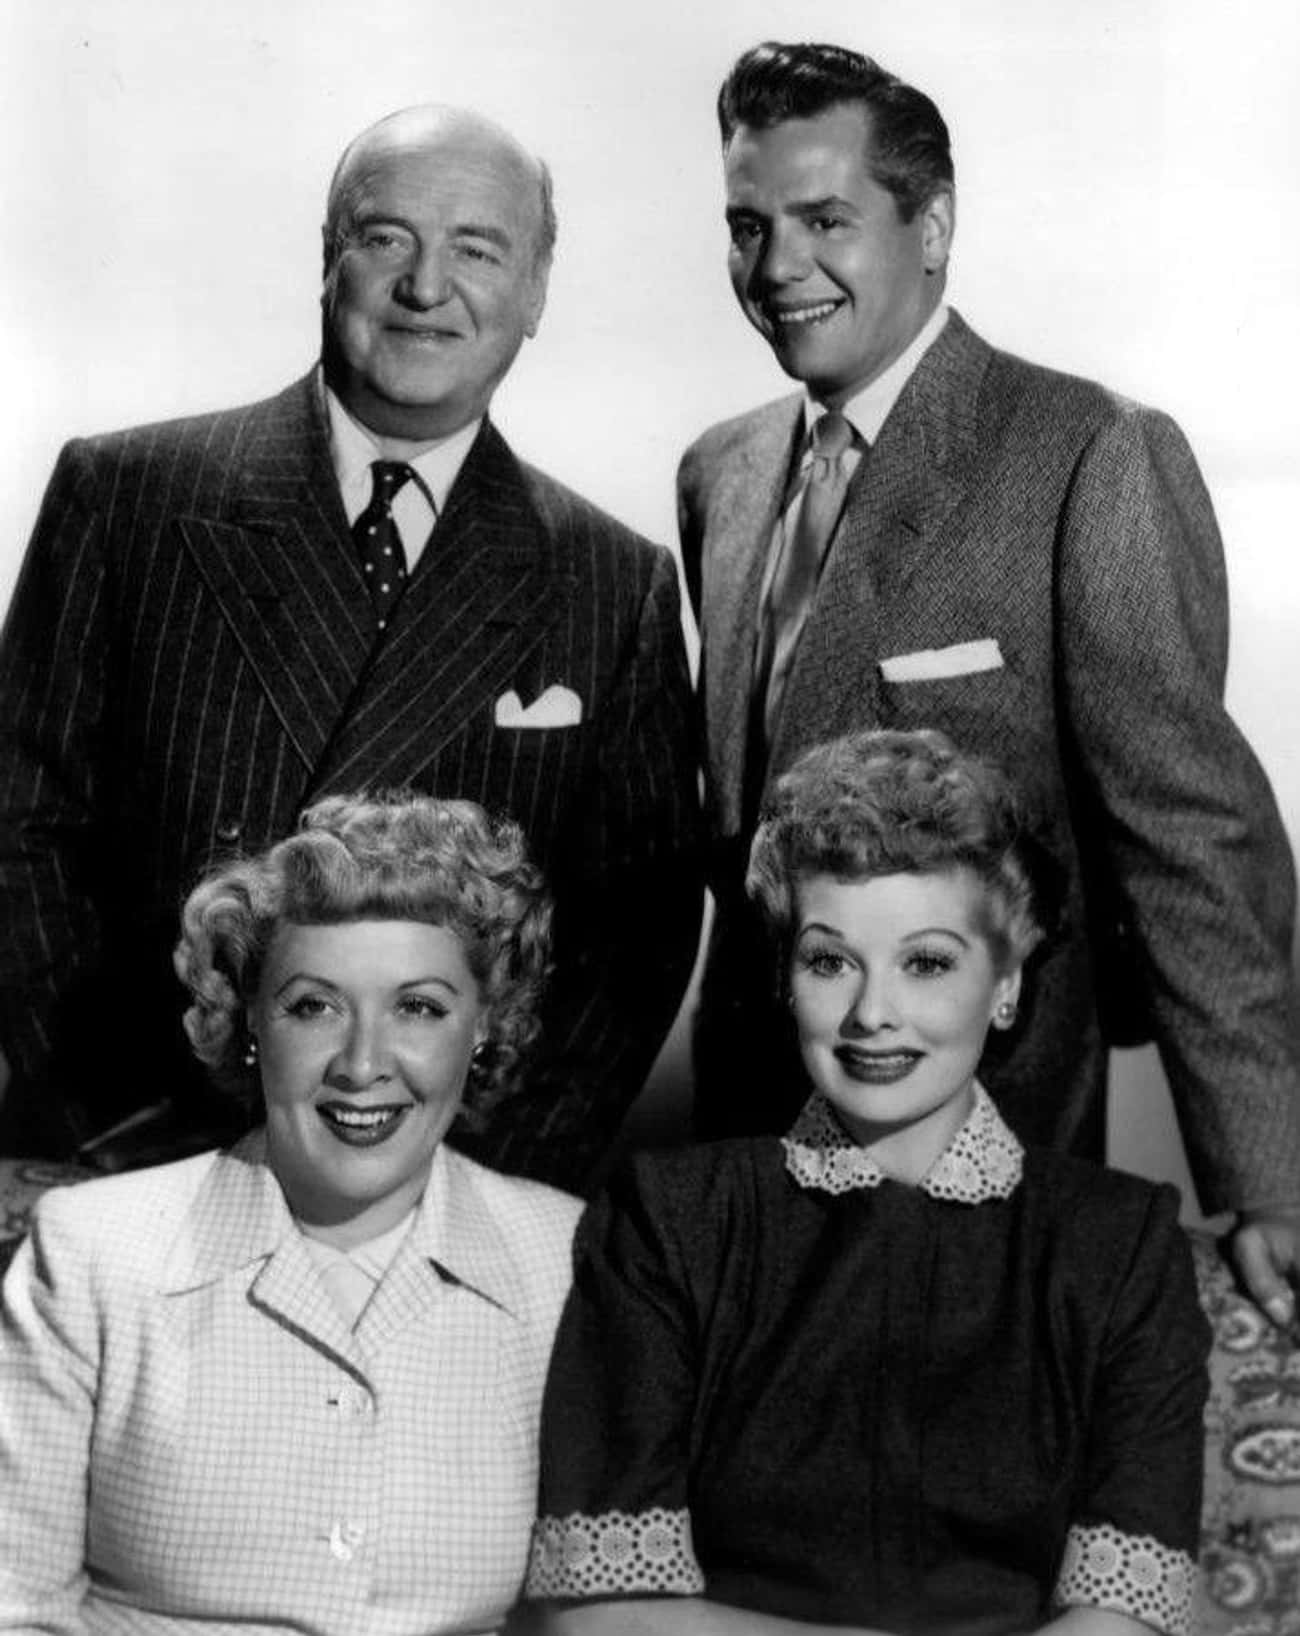 I Love Lucy is listed (or ranked) 1 on the list The Most Popular TV Shows Of The 1950s